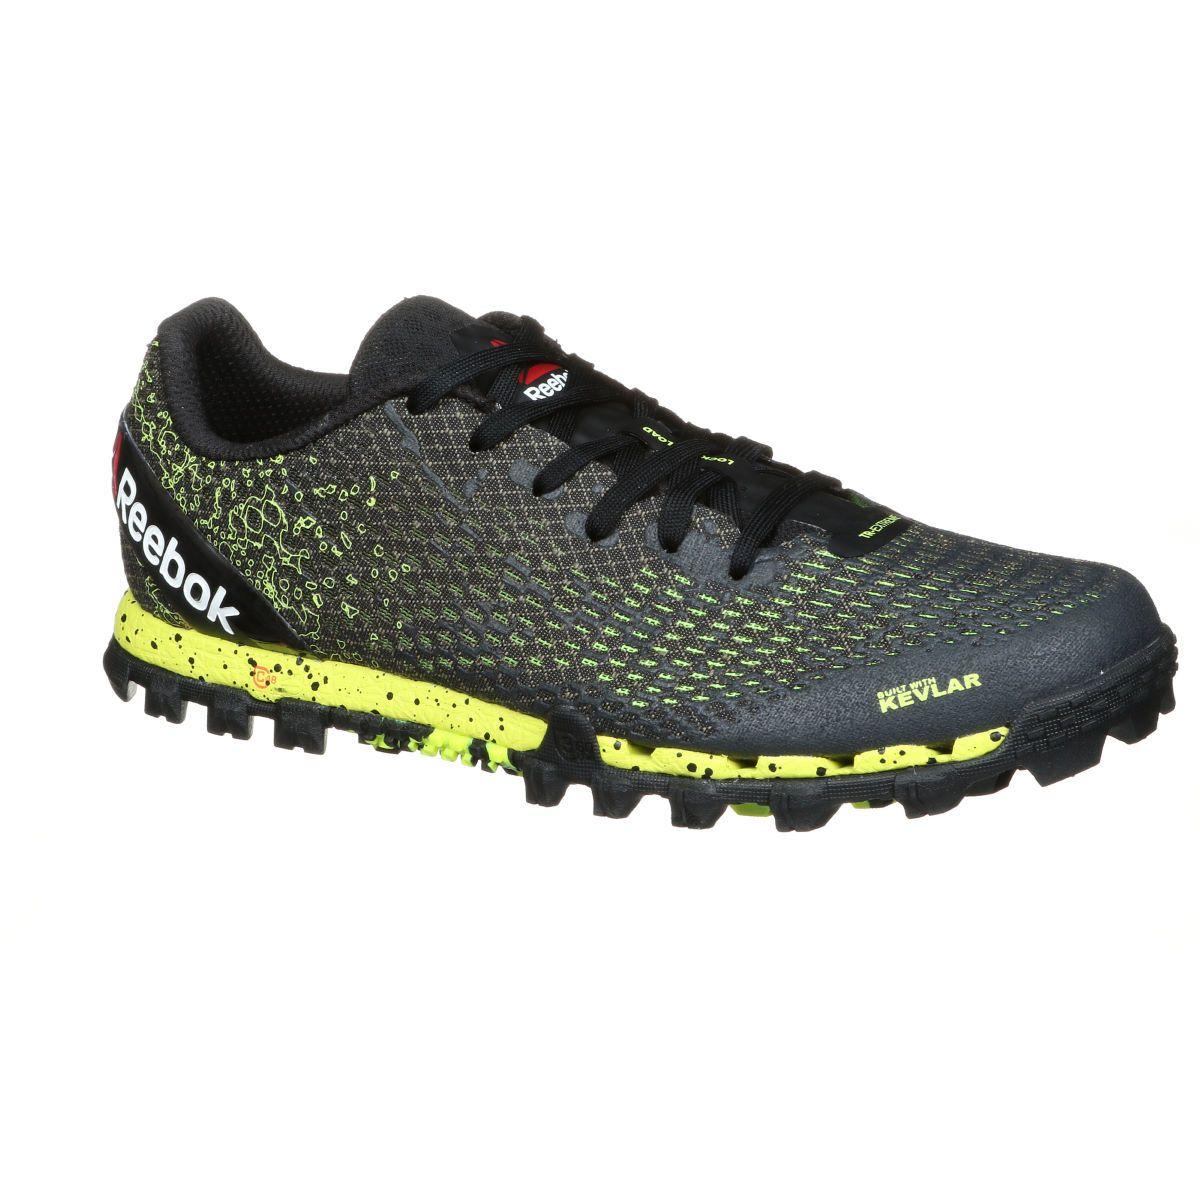 5207985c013 Reebok Women s All Terrain Extreme Shoe (AW15) Offroad Running Shoes ...